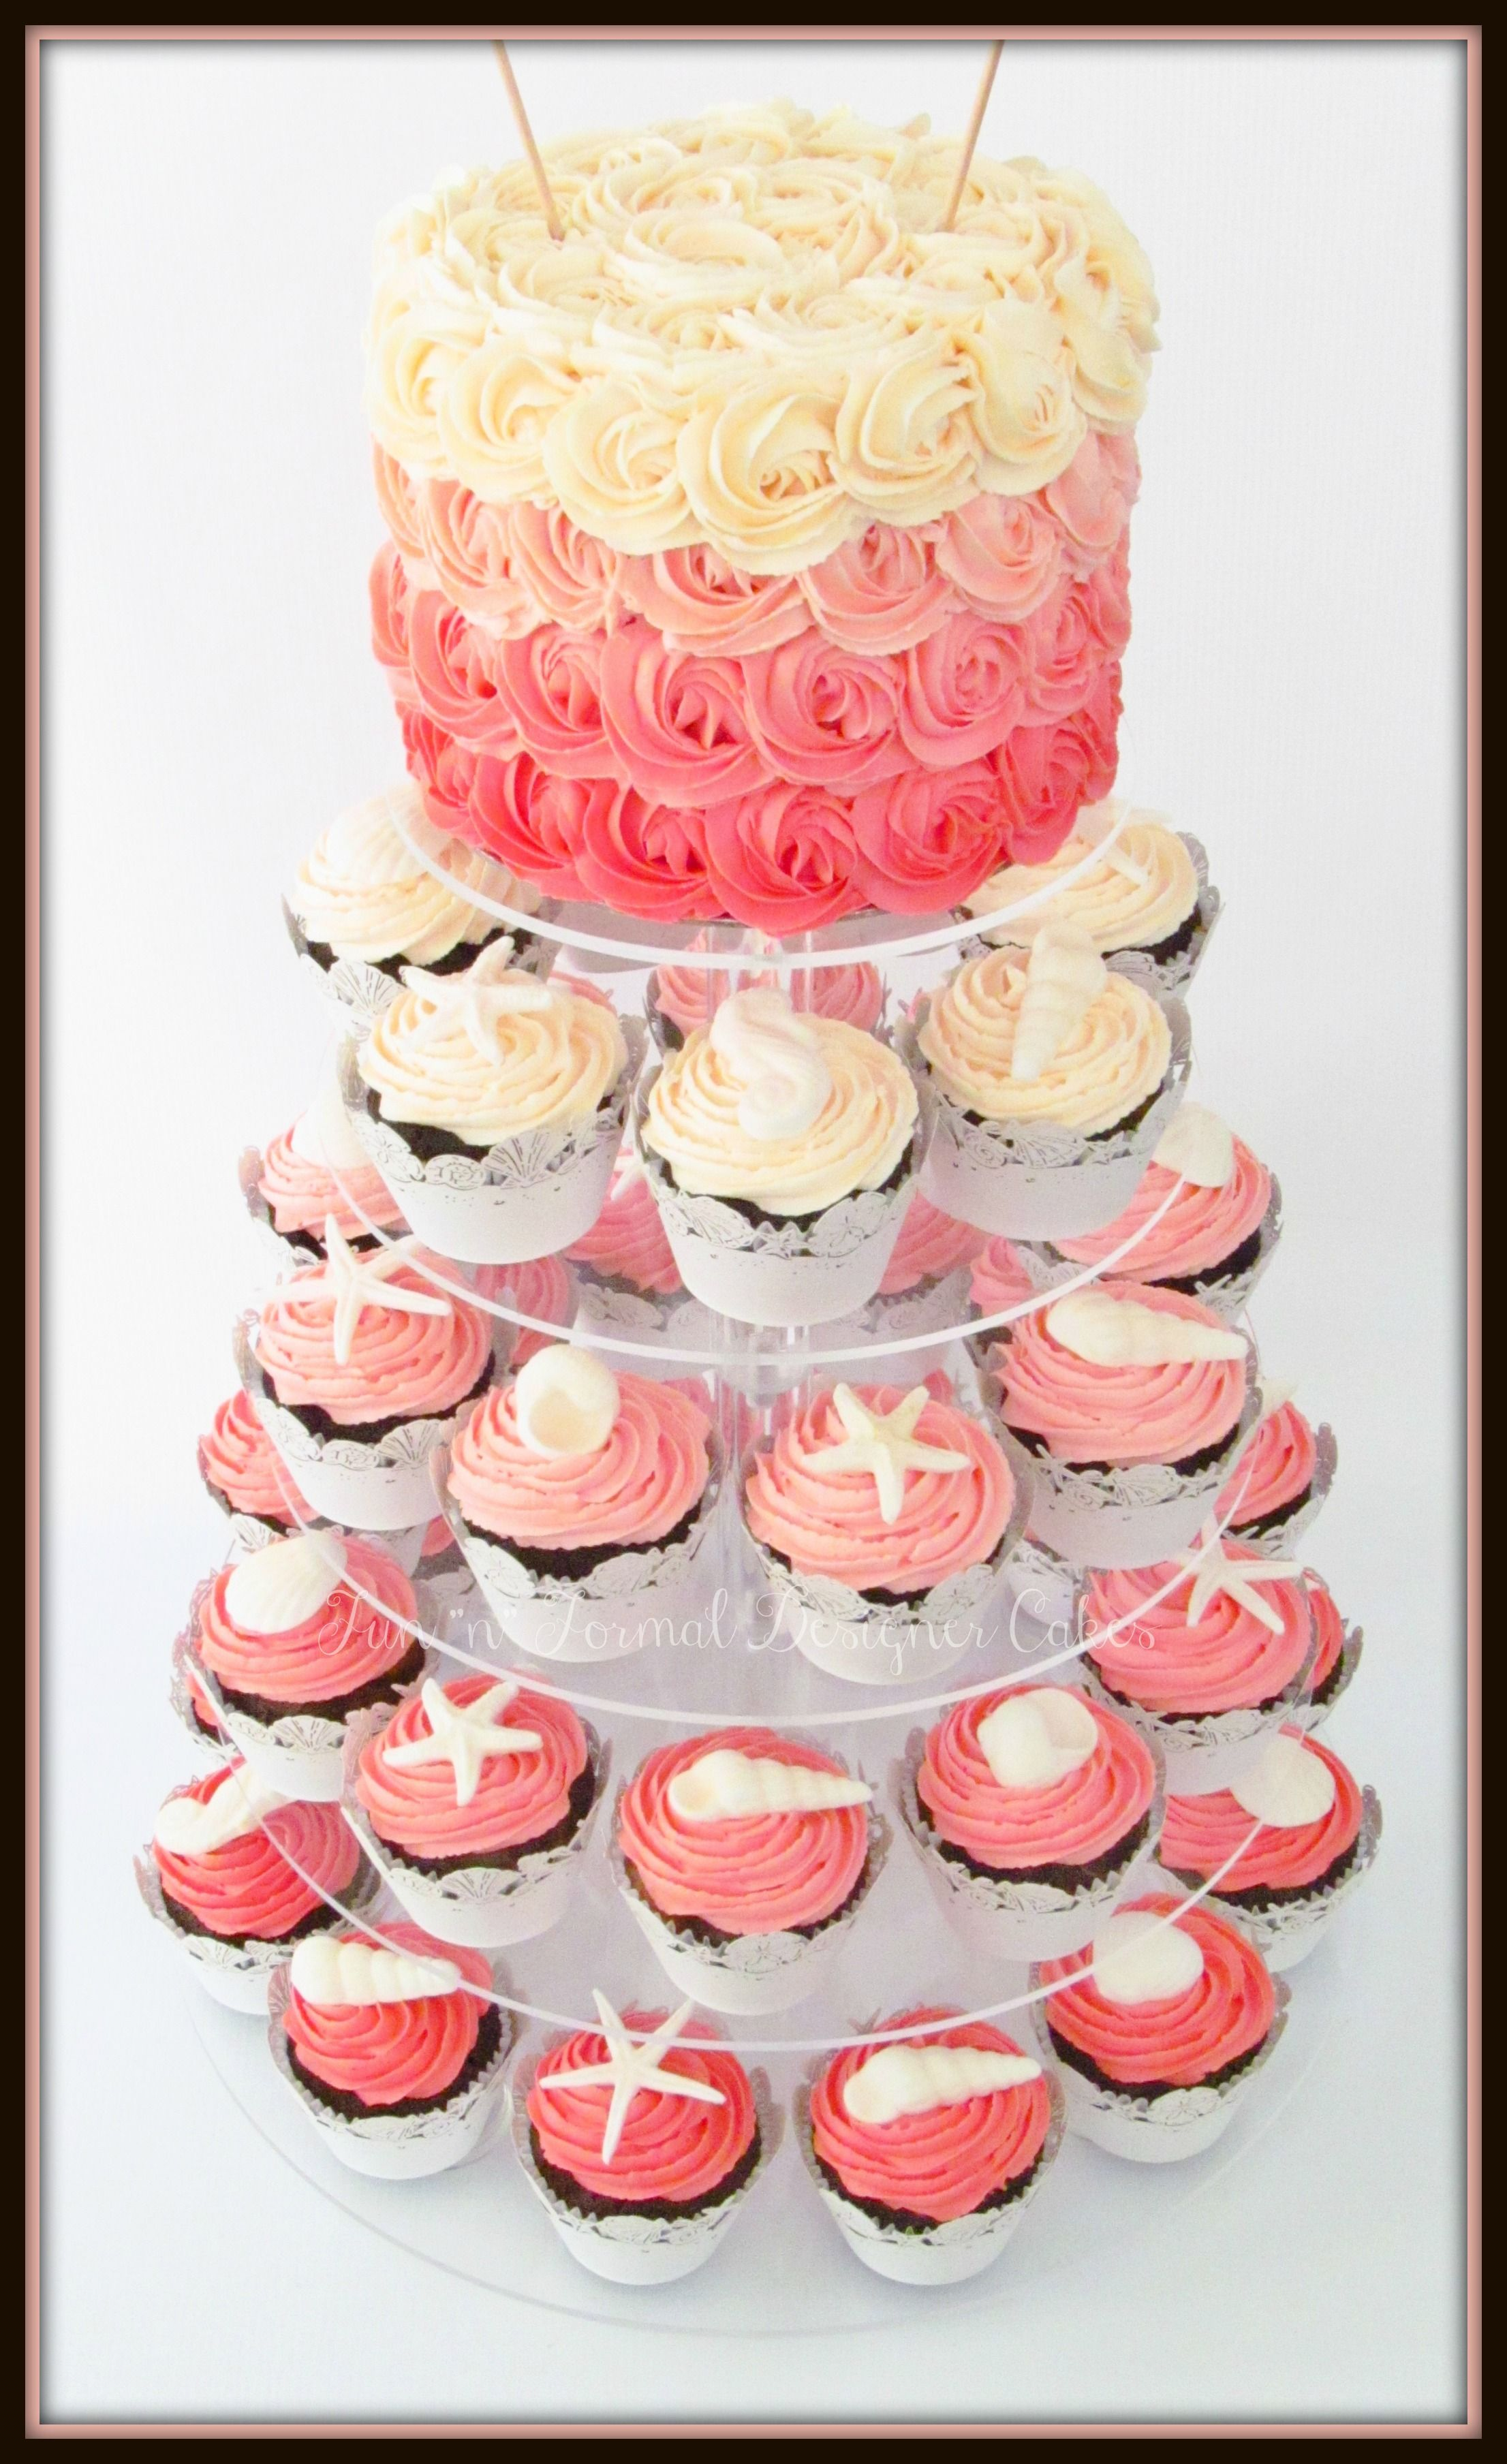 Beach themed buttercream rosette cake and cupcakes for a wedding ...